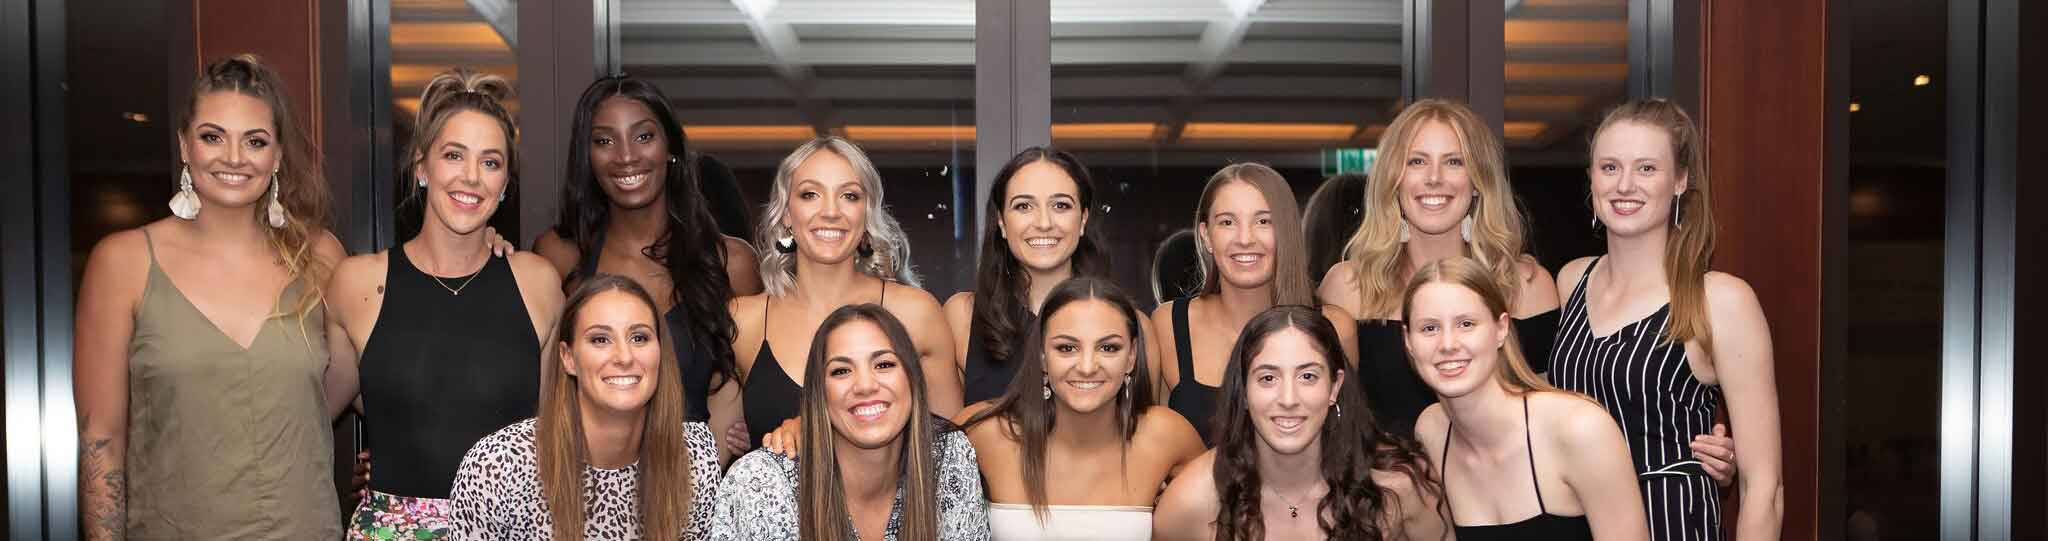 The Boomers at Presentation Night